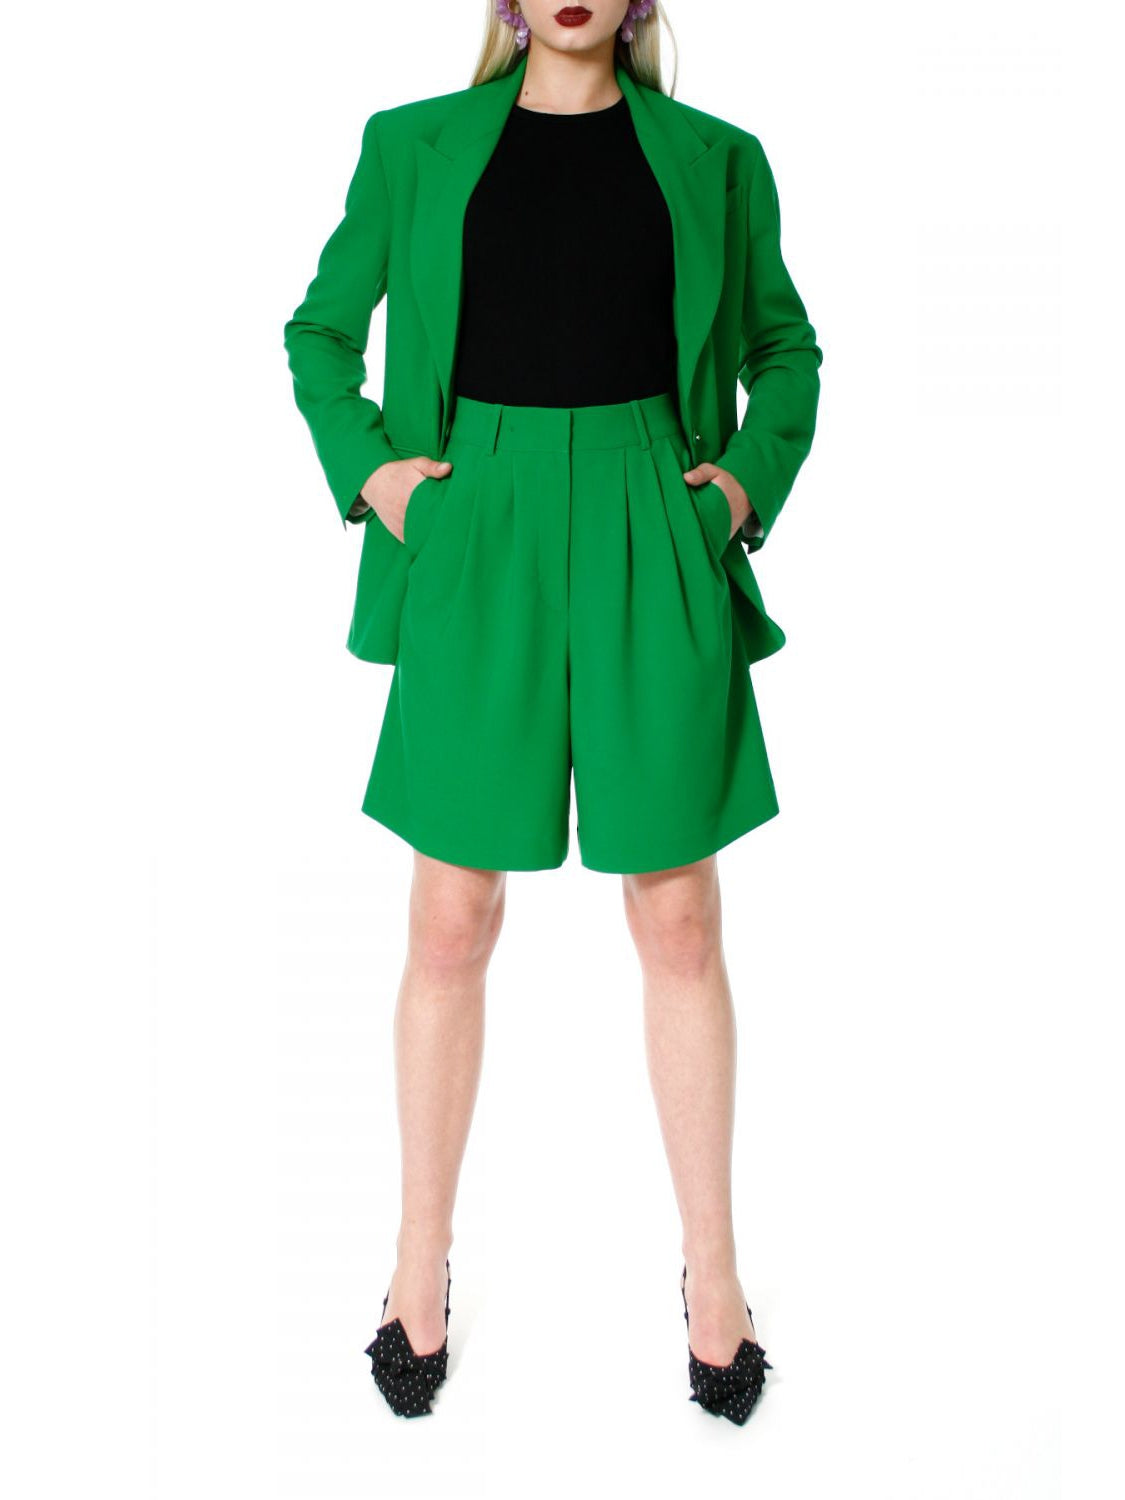 Billie Poison Green Bermuda Shorts - AGGI